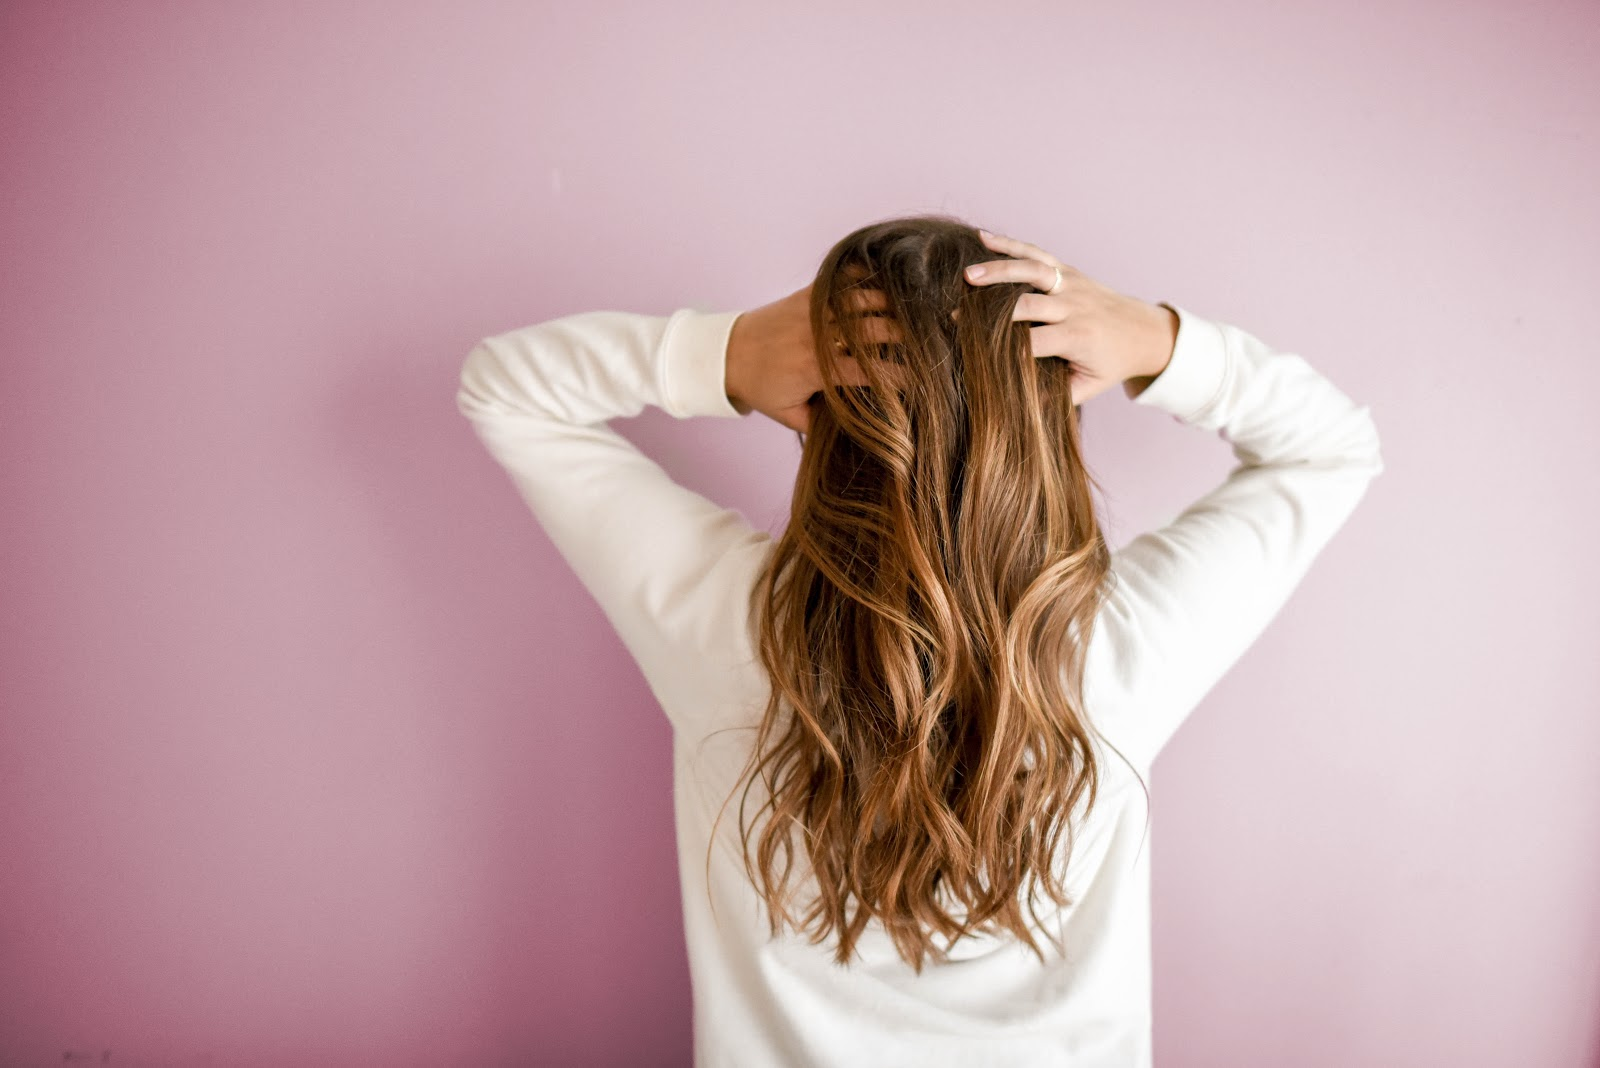 Beauty Tips For Girls Who Prefer To Stay Messy % - % The Voice Of Woman